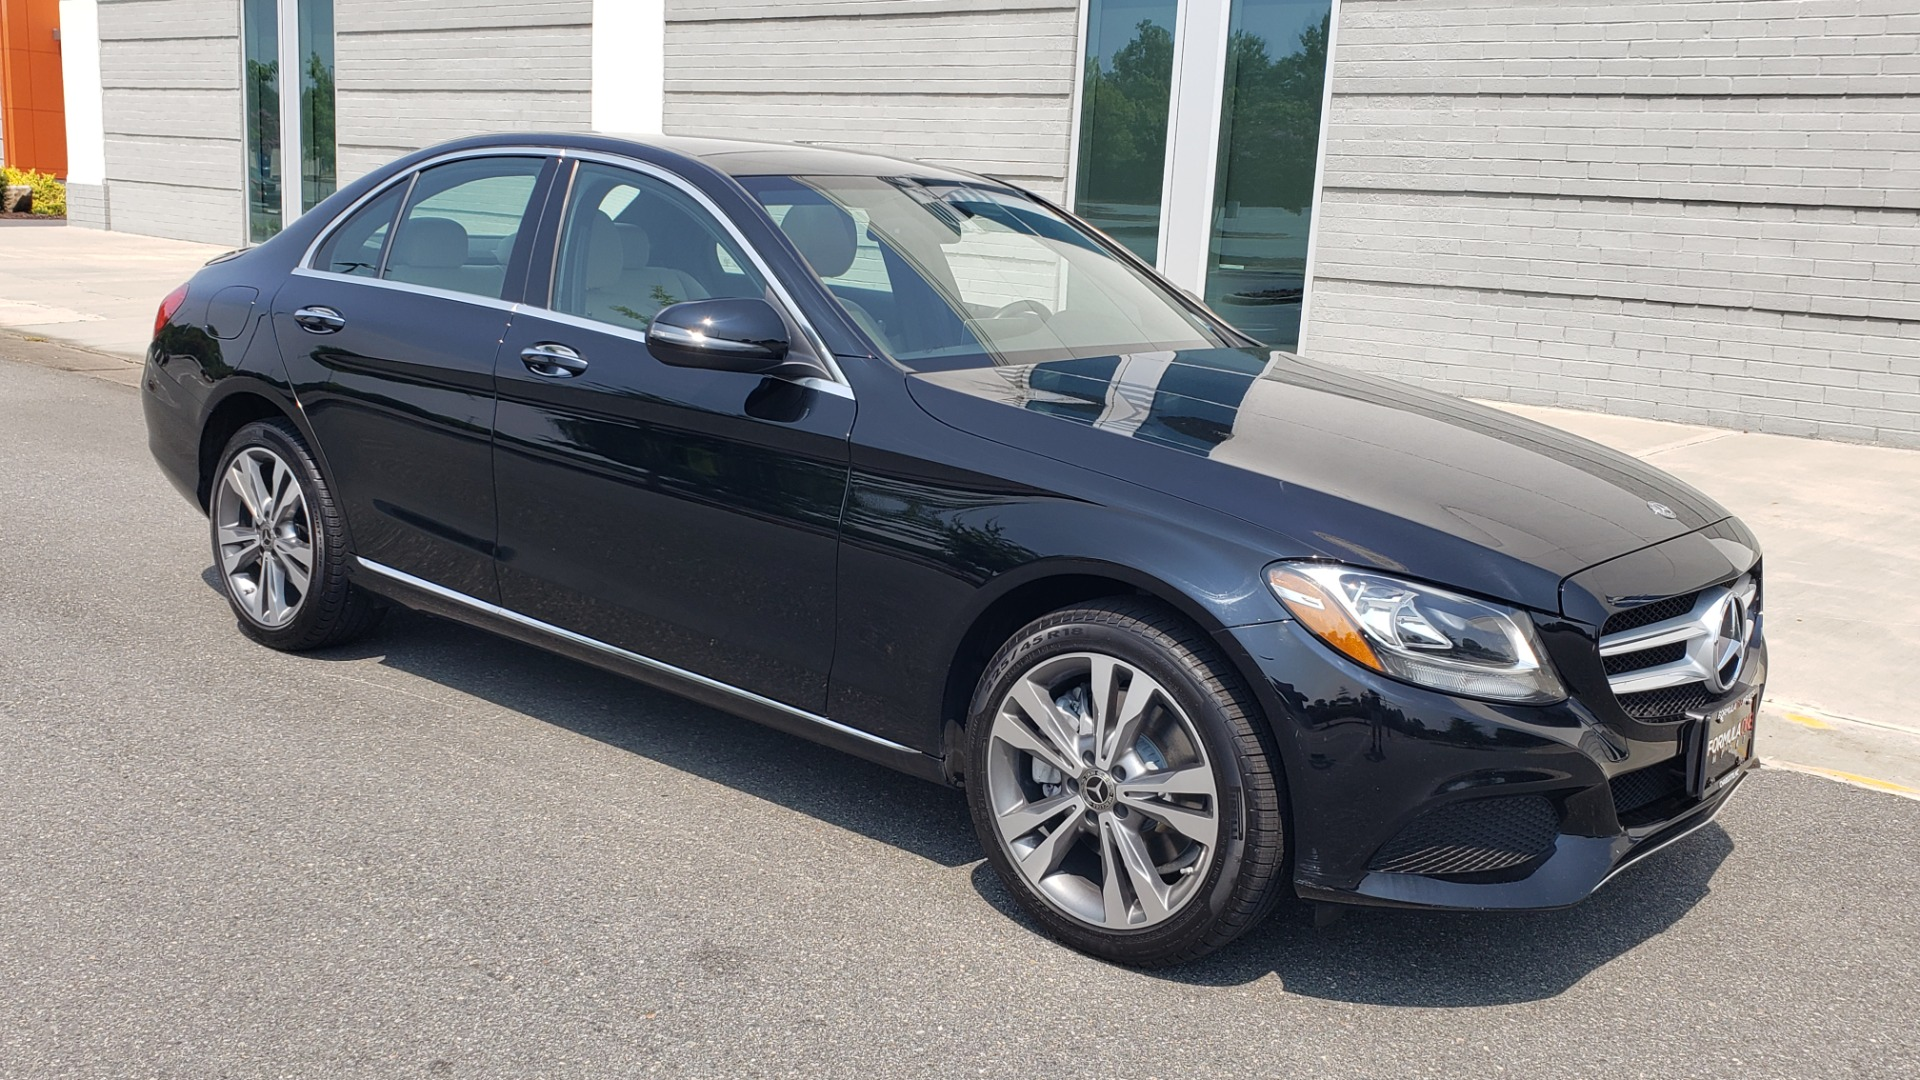 Used 2018 Mercedes-Benz C-CLASS C 300 4MATIC / PREMIUM / MULTIMEDIA / NAV / PANO-ROOF / BURMESTER for sale $30,495 at Formula Imports in Charlotte NC 28227 7